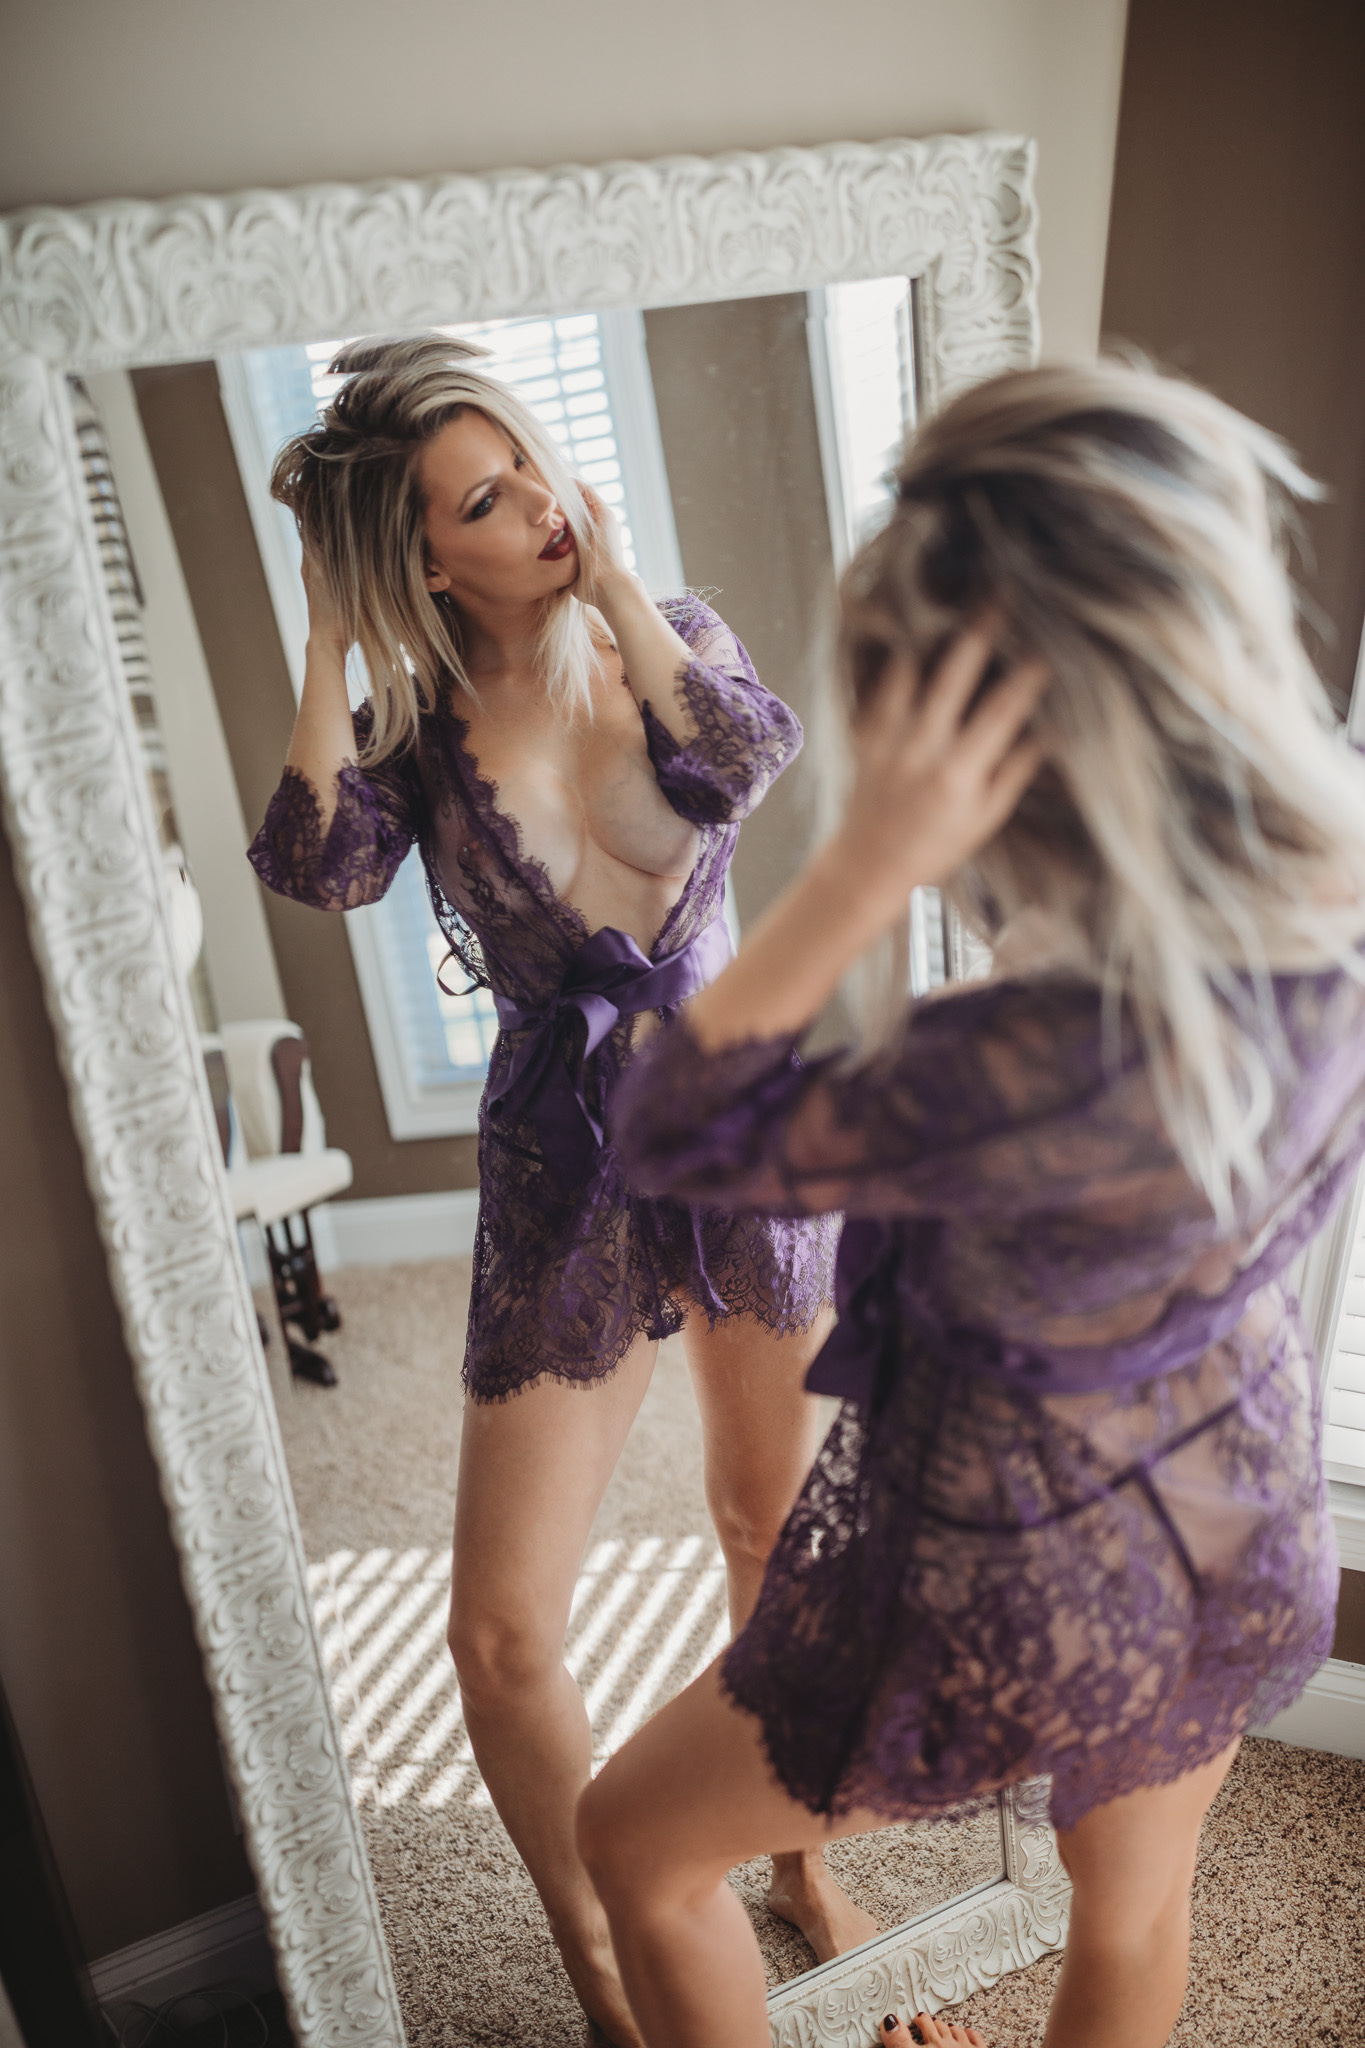 Girl in lace robe looking in the mirror